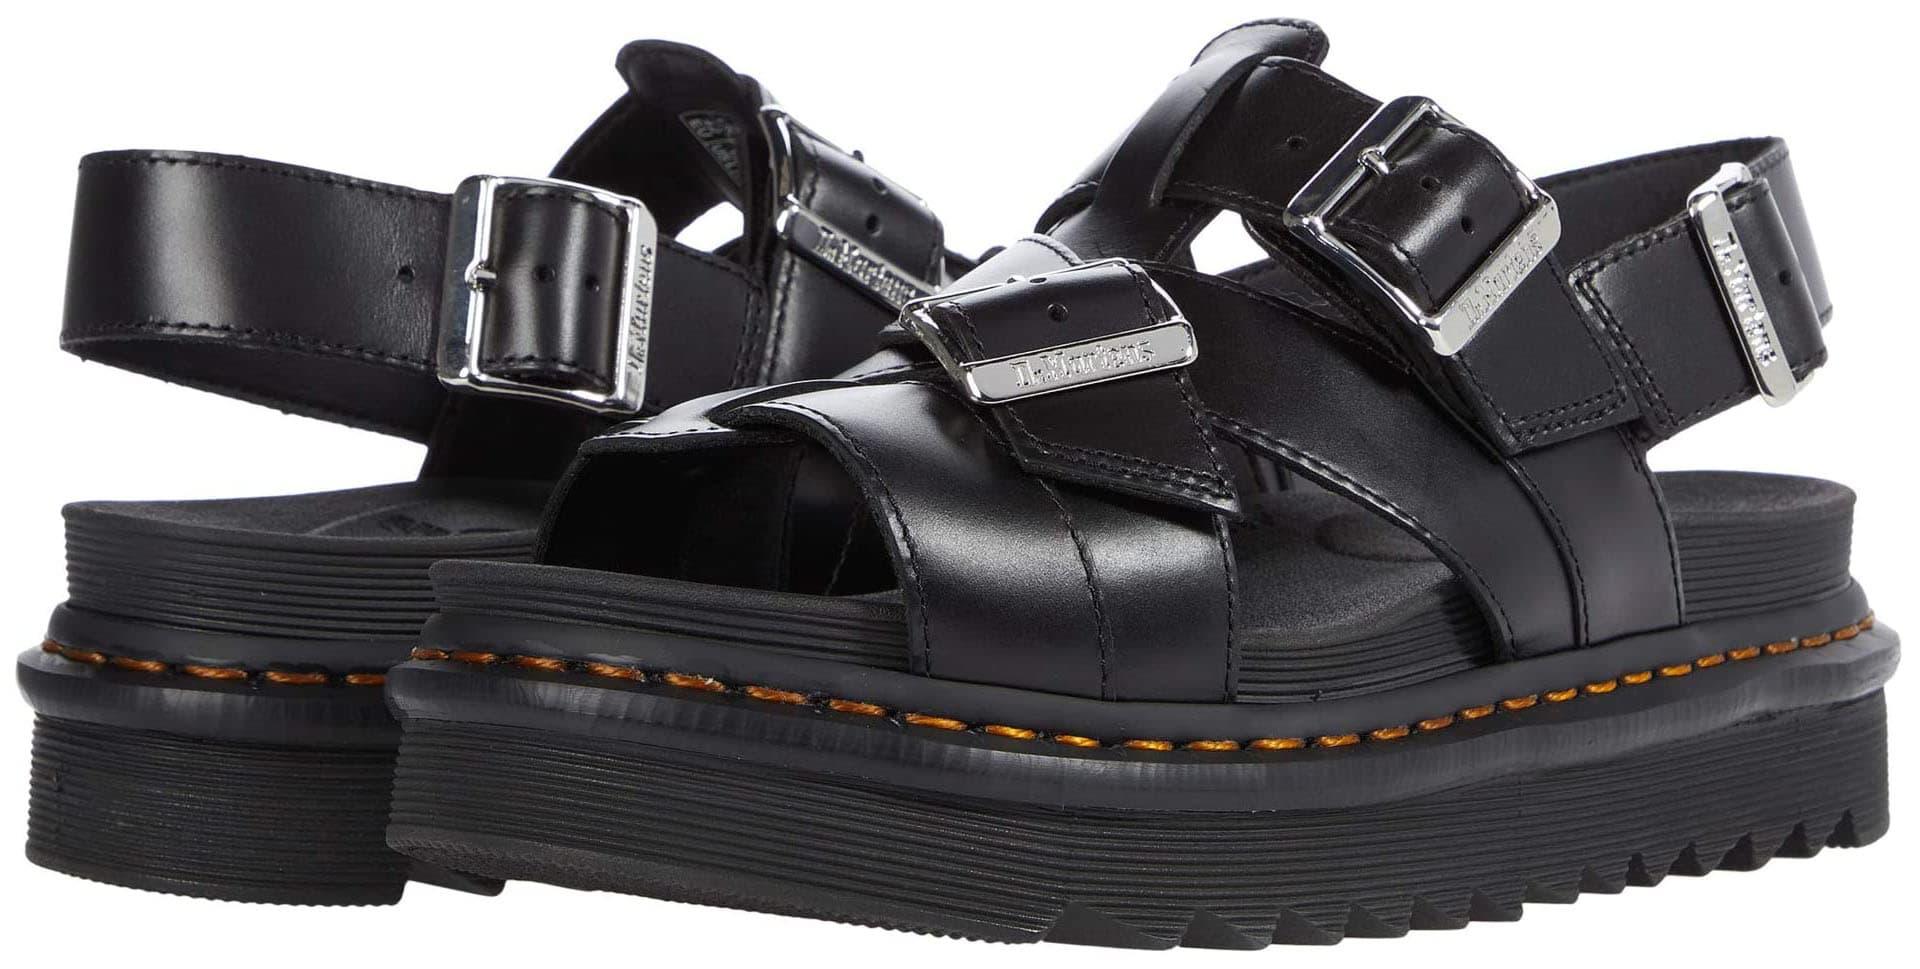 Add tough-chic vibe to your summer look with strappy flatforms like Dr. Martens' Terry II sandals